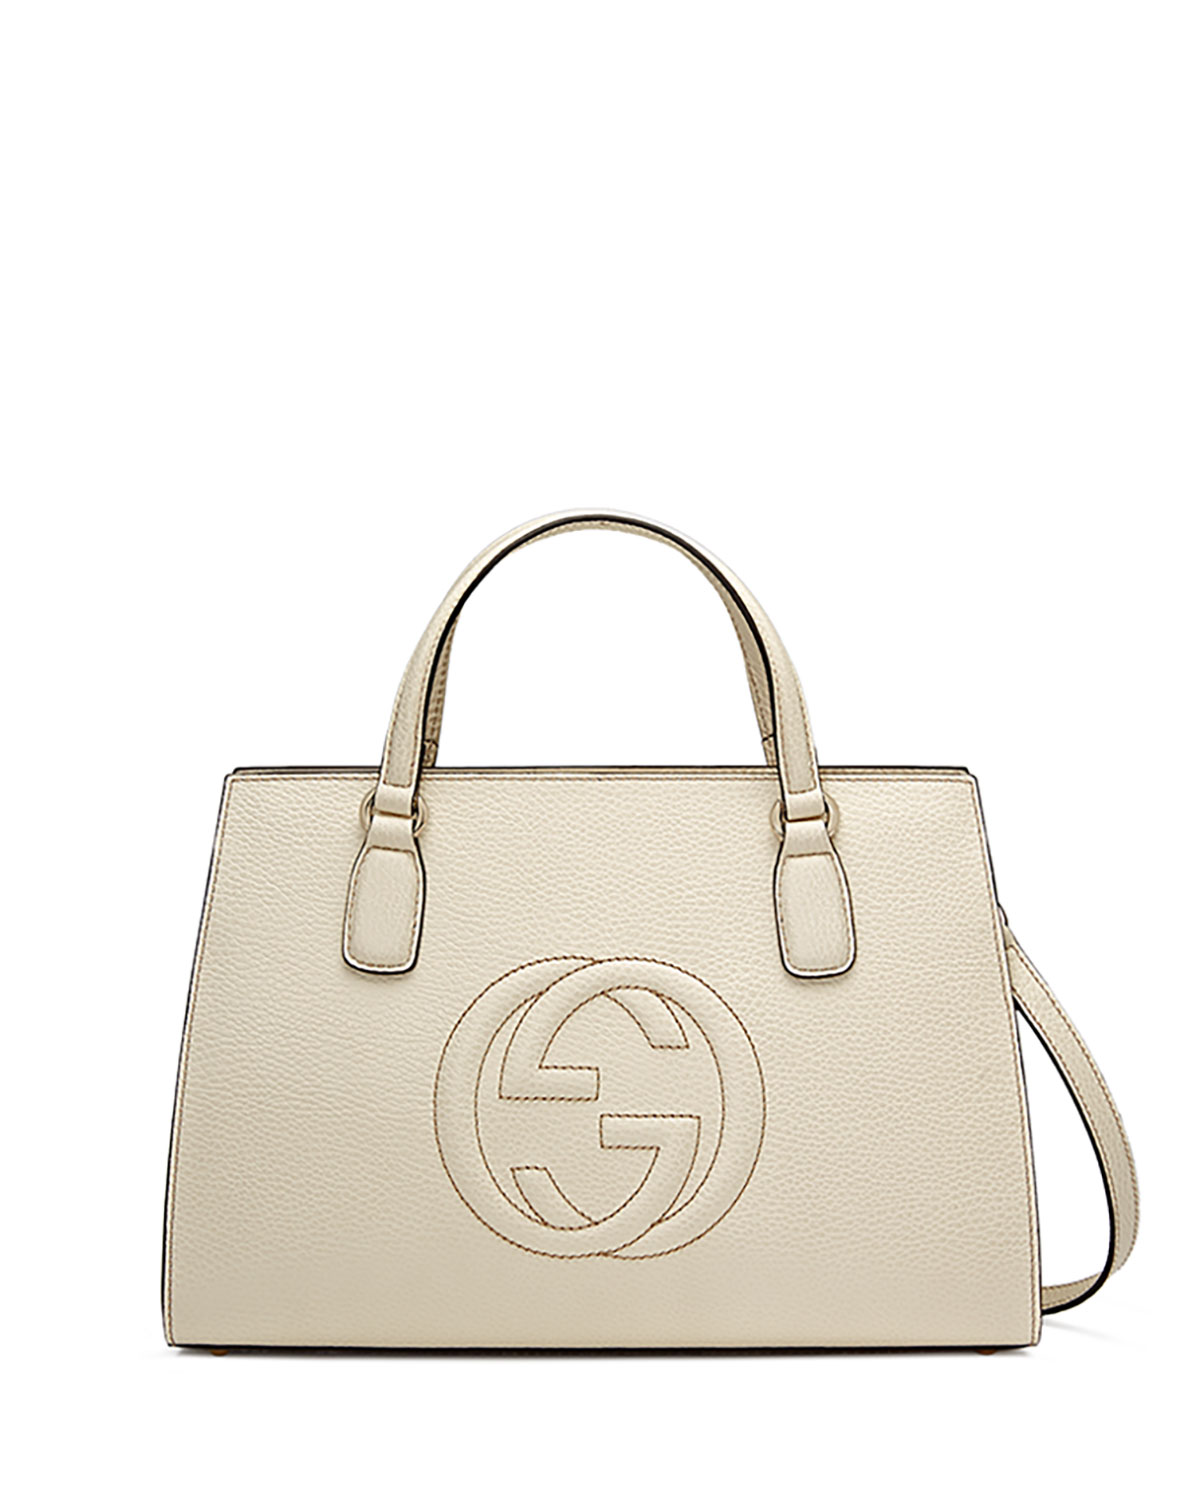 db5c33a9d3 Soho Leather Top-Handle Satchel Bag, White